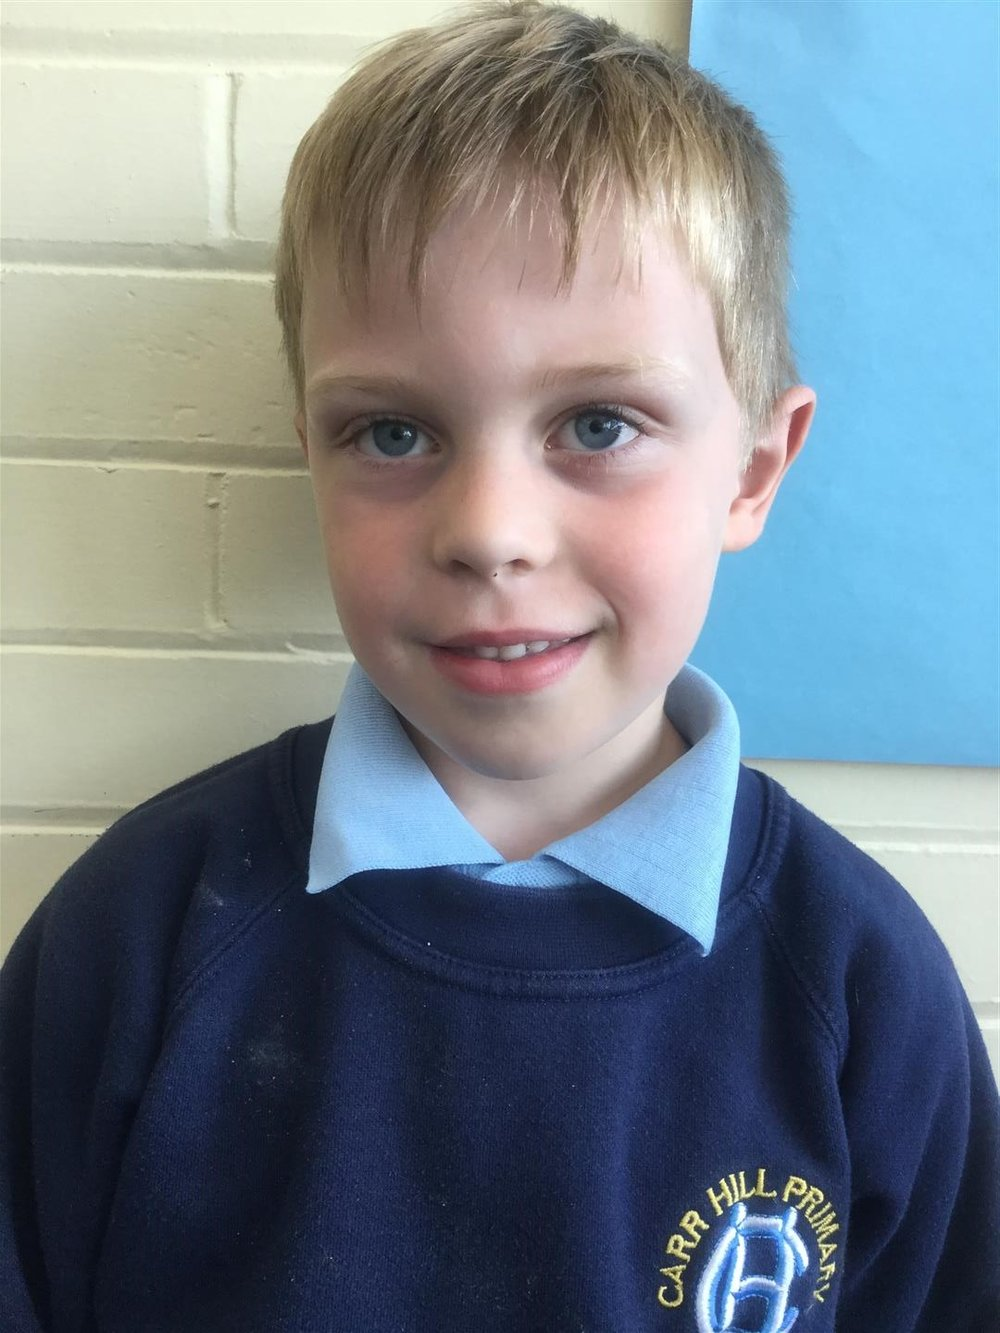 This week's Explorer of the Week is Samuel, for always working hard and showing a conscientious attitude. -